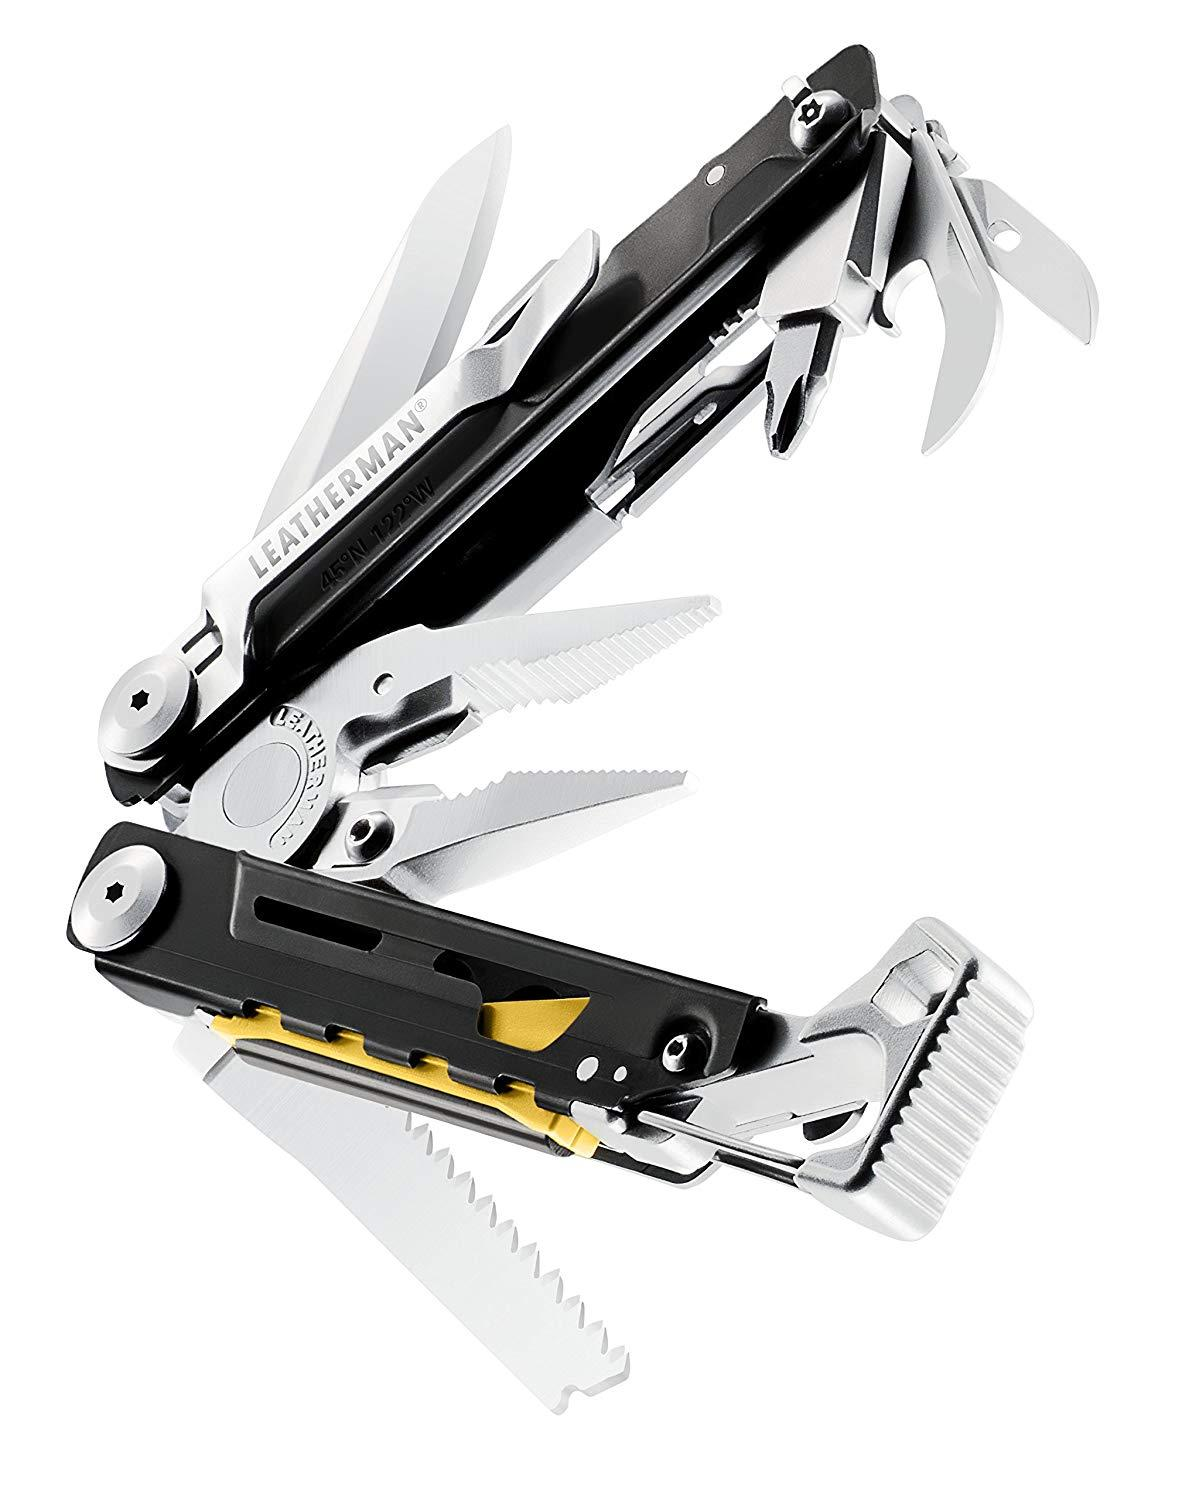 Tools : LEATHERMAN - SIGNAL Camping Multitool with Hammer and Emergency Whistle - 8 Colors